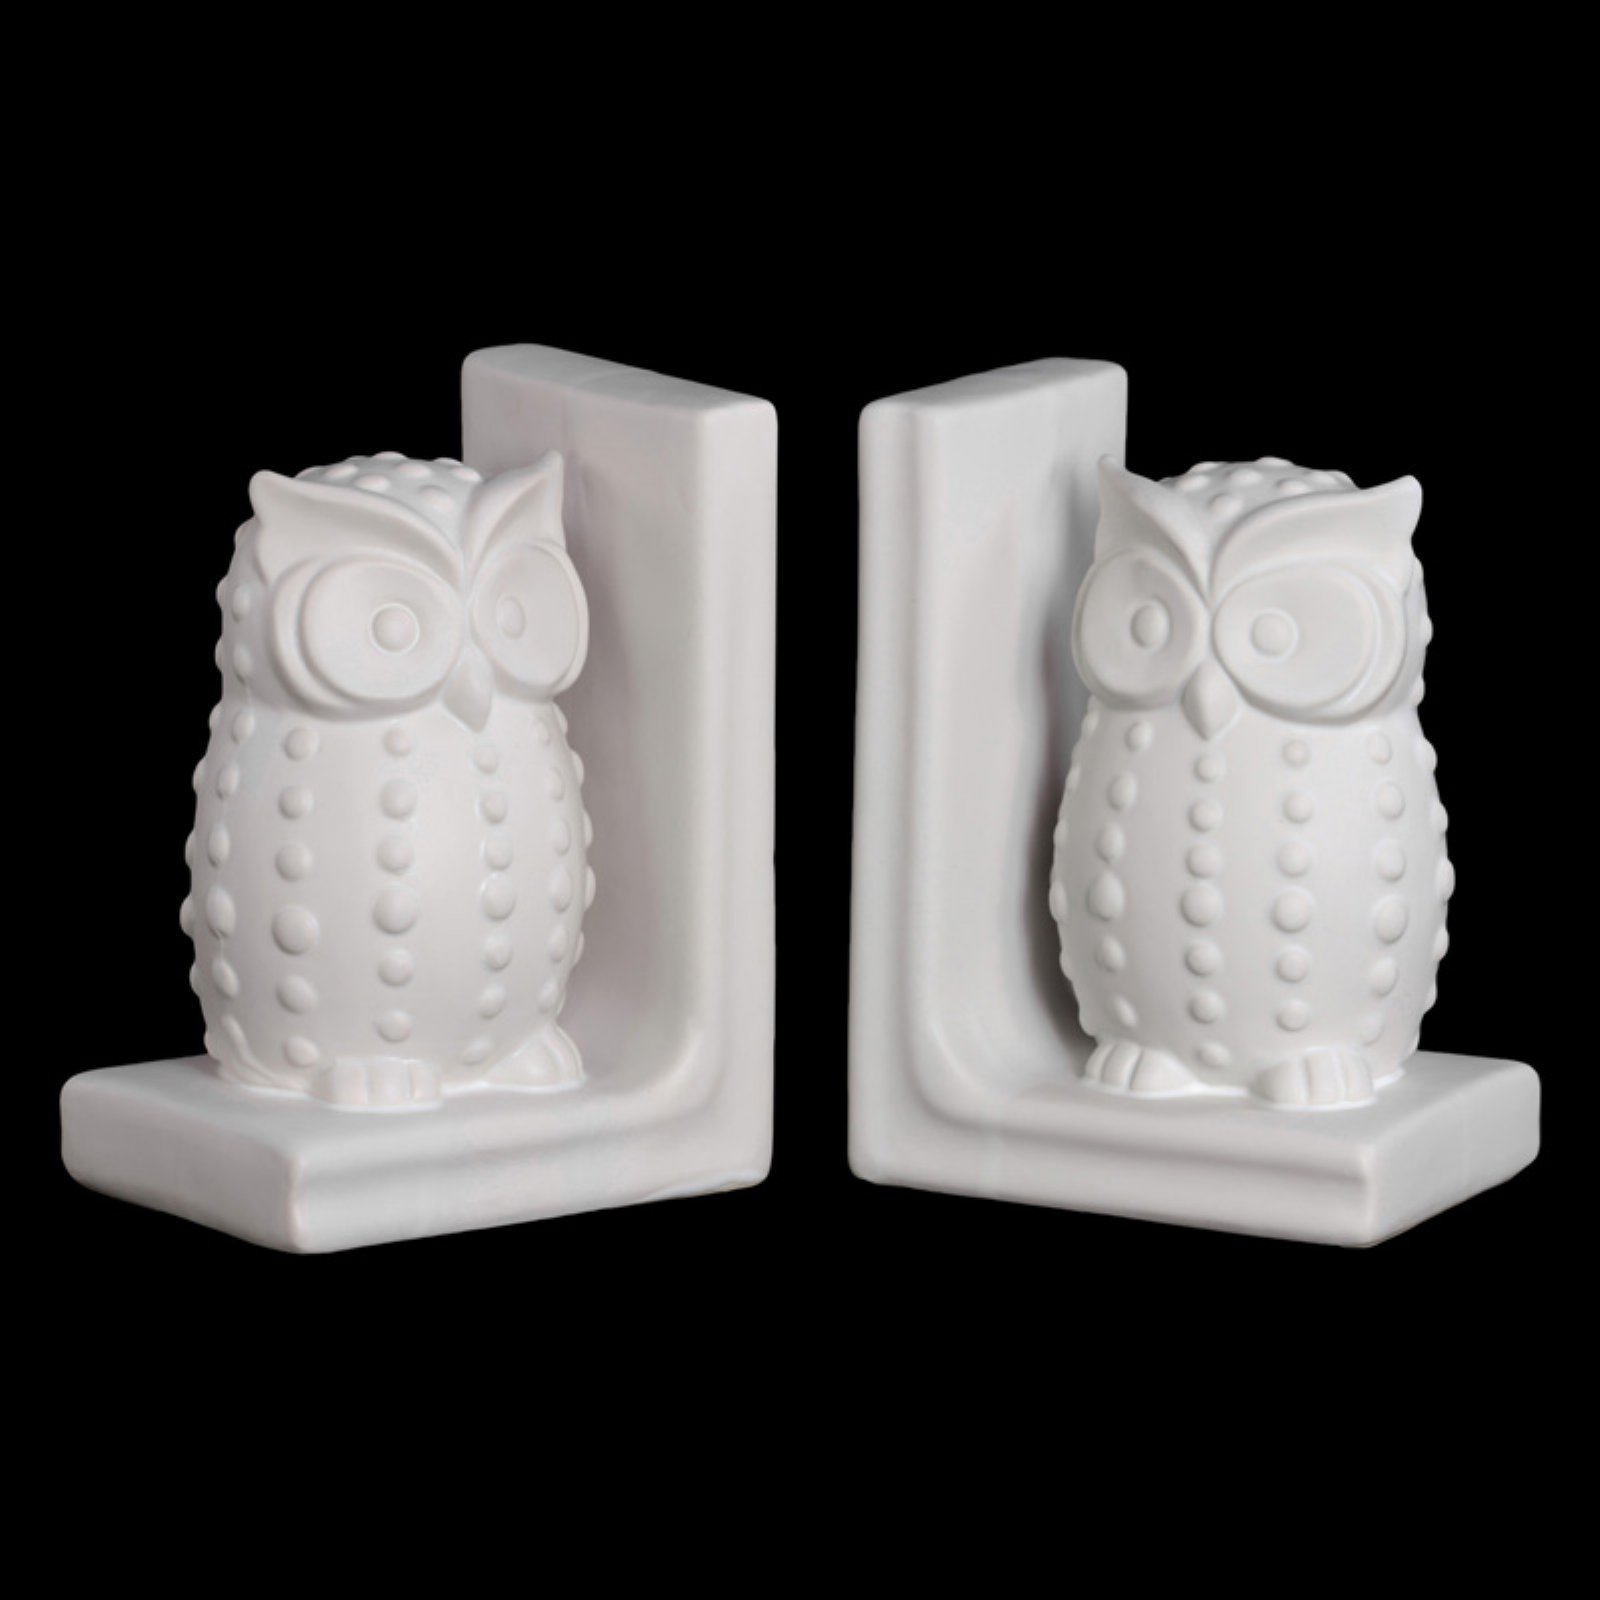 Urban Trends Ceramic Standing Owl with Studs Bookend